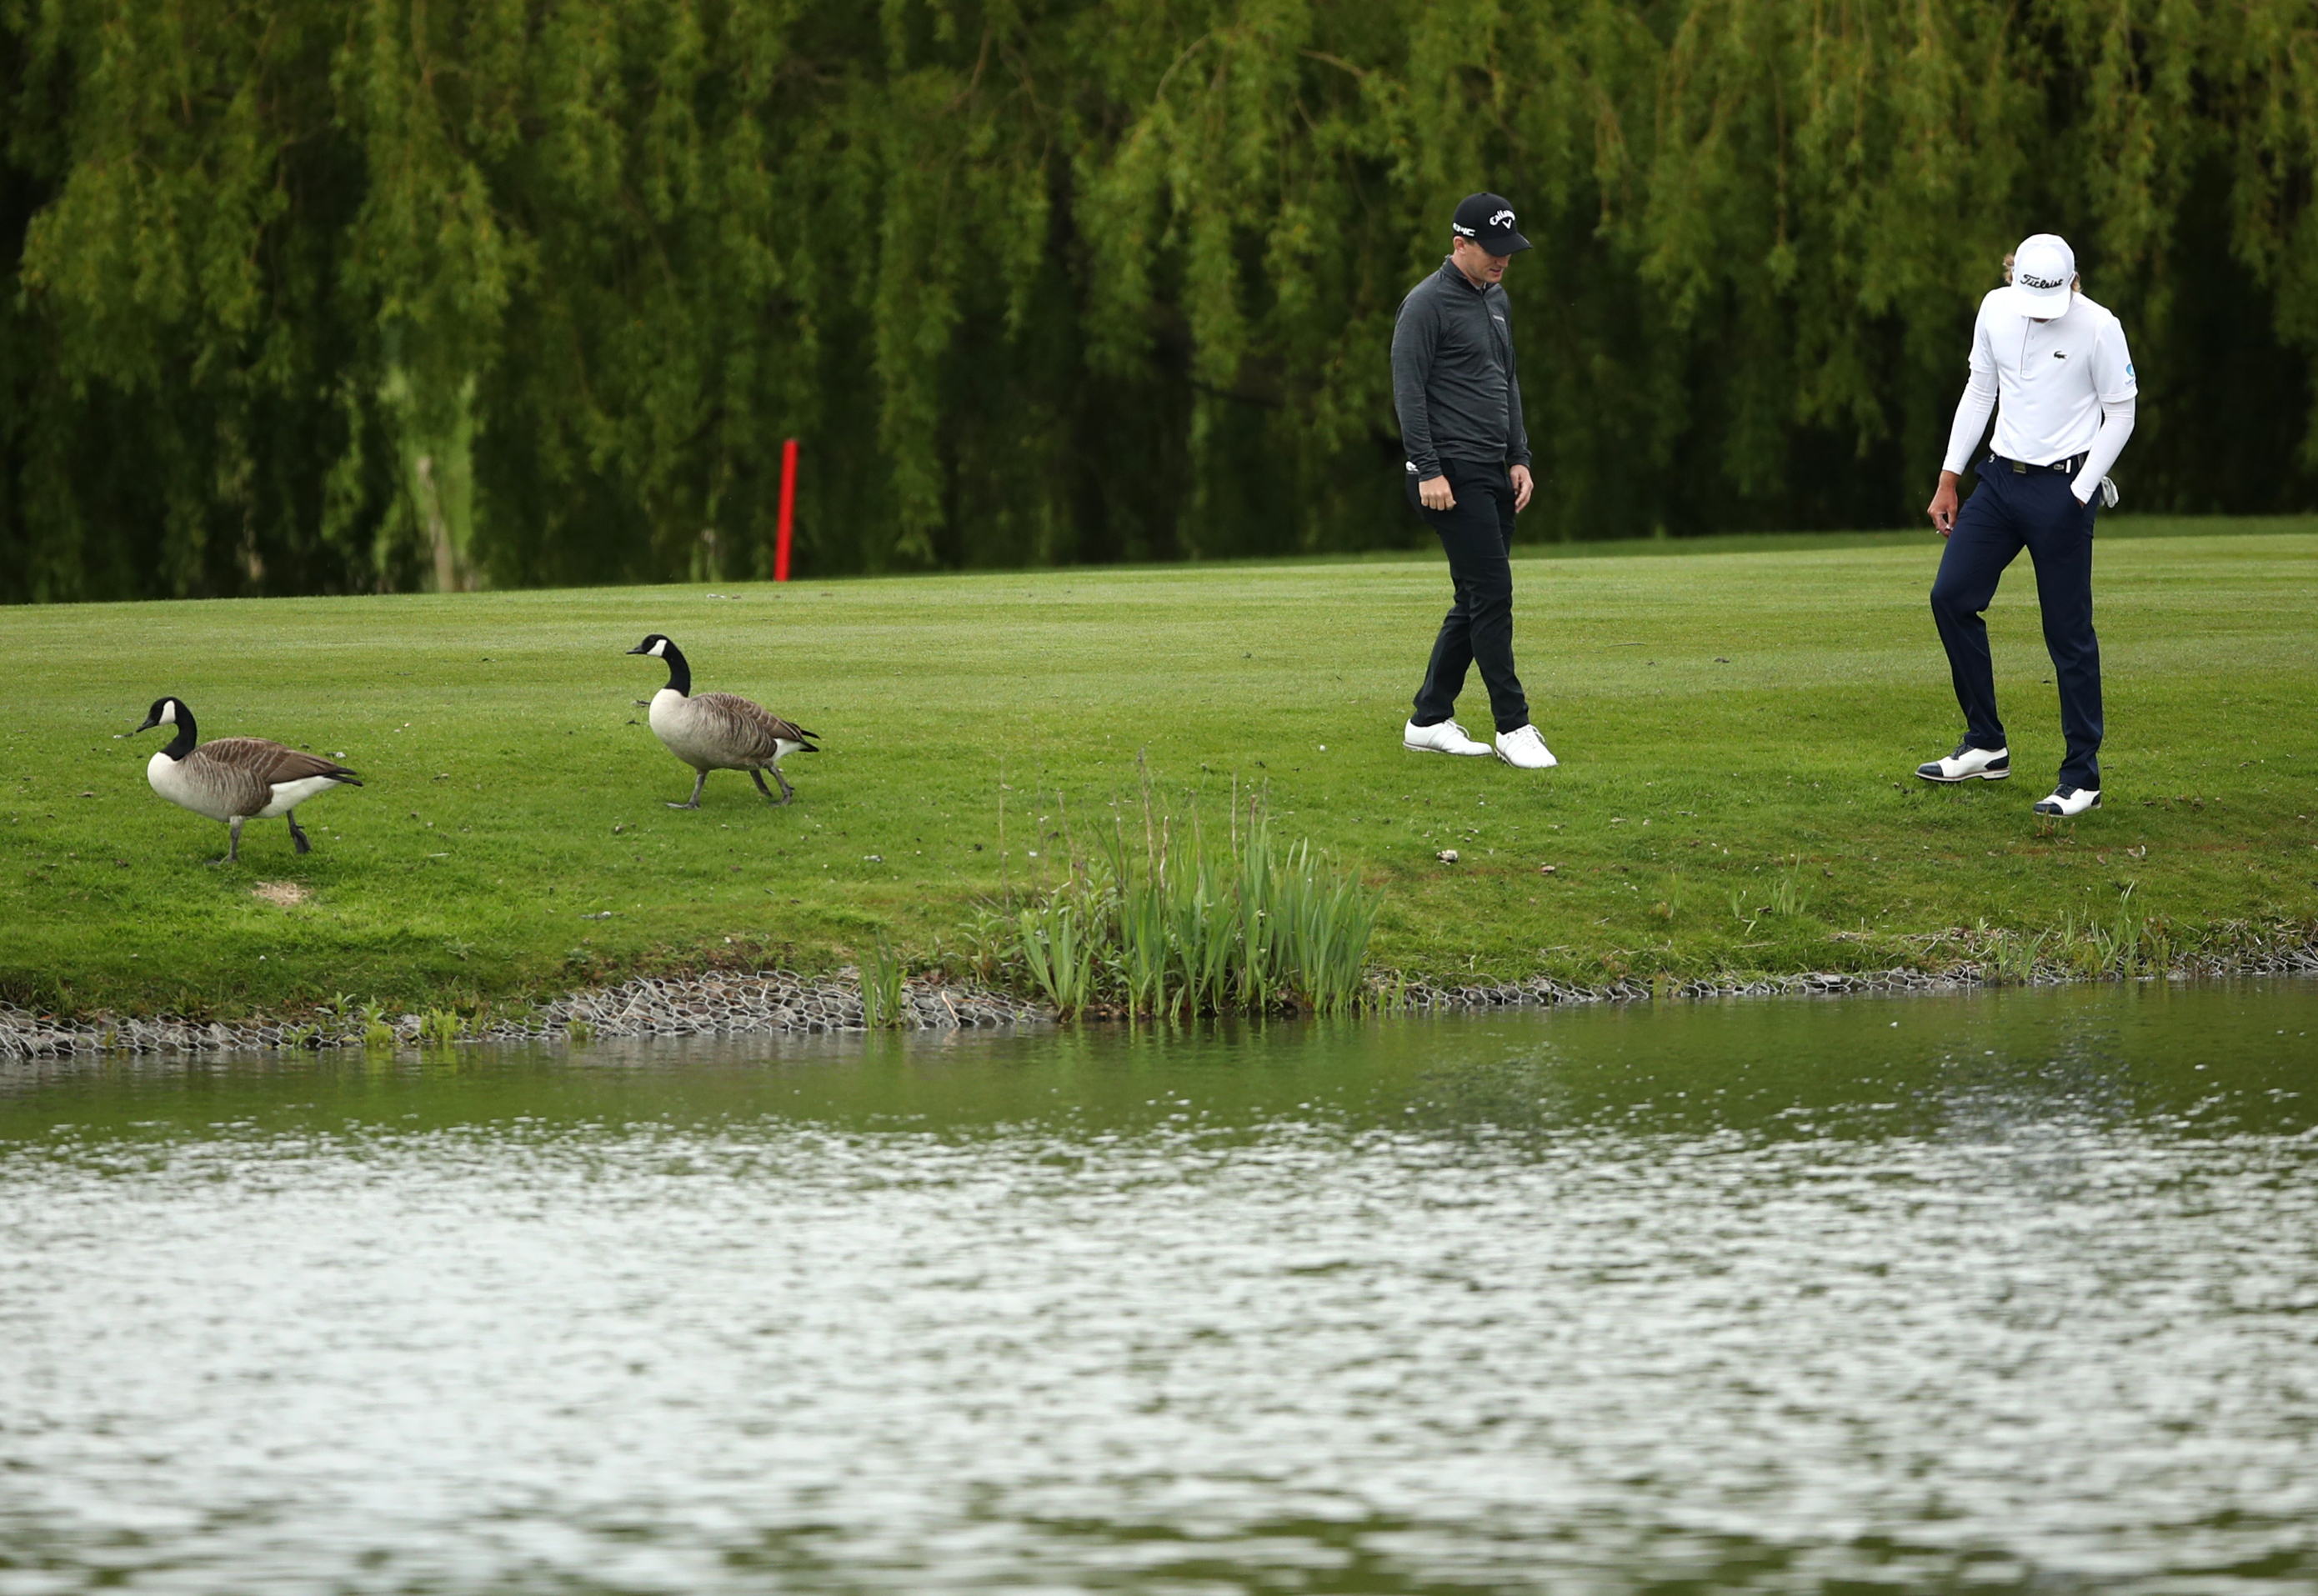 <p>England's Chris Paisley and Australia's Maverick Antcliff search for a ball hit in the lake during day two of the Betfred British Masters at The Belfry, Sutton Coldfield. Picture date: Thursday May 13, 2021.</p>